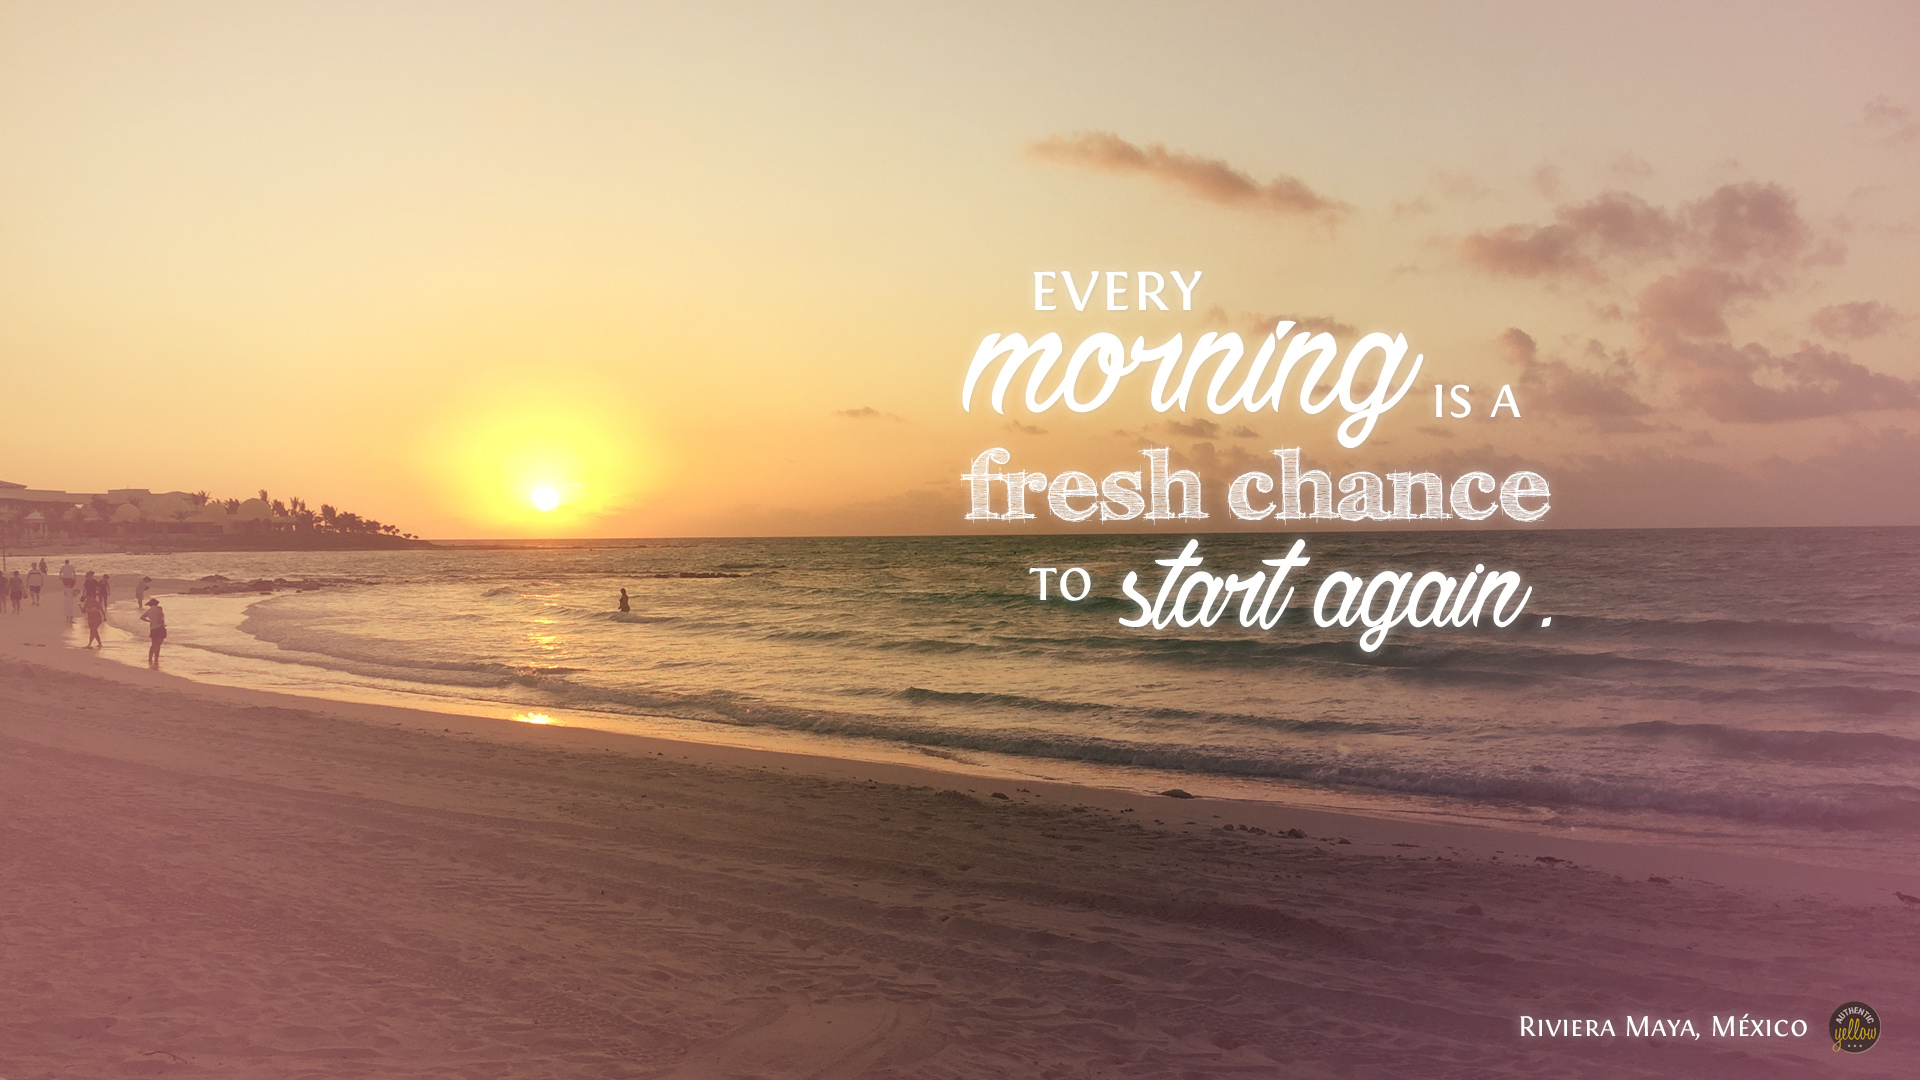 Every morning is a fresh chance to start again - Desktop wallpaper